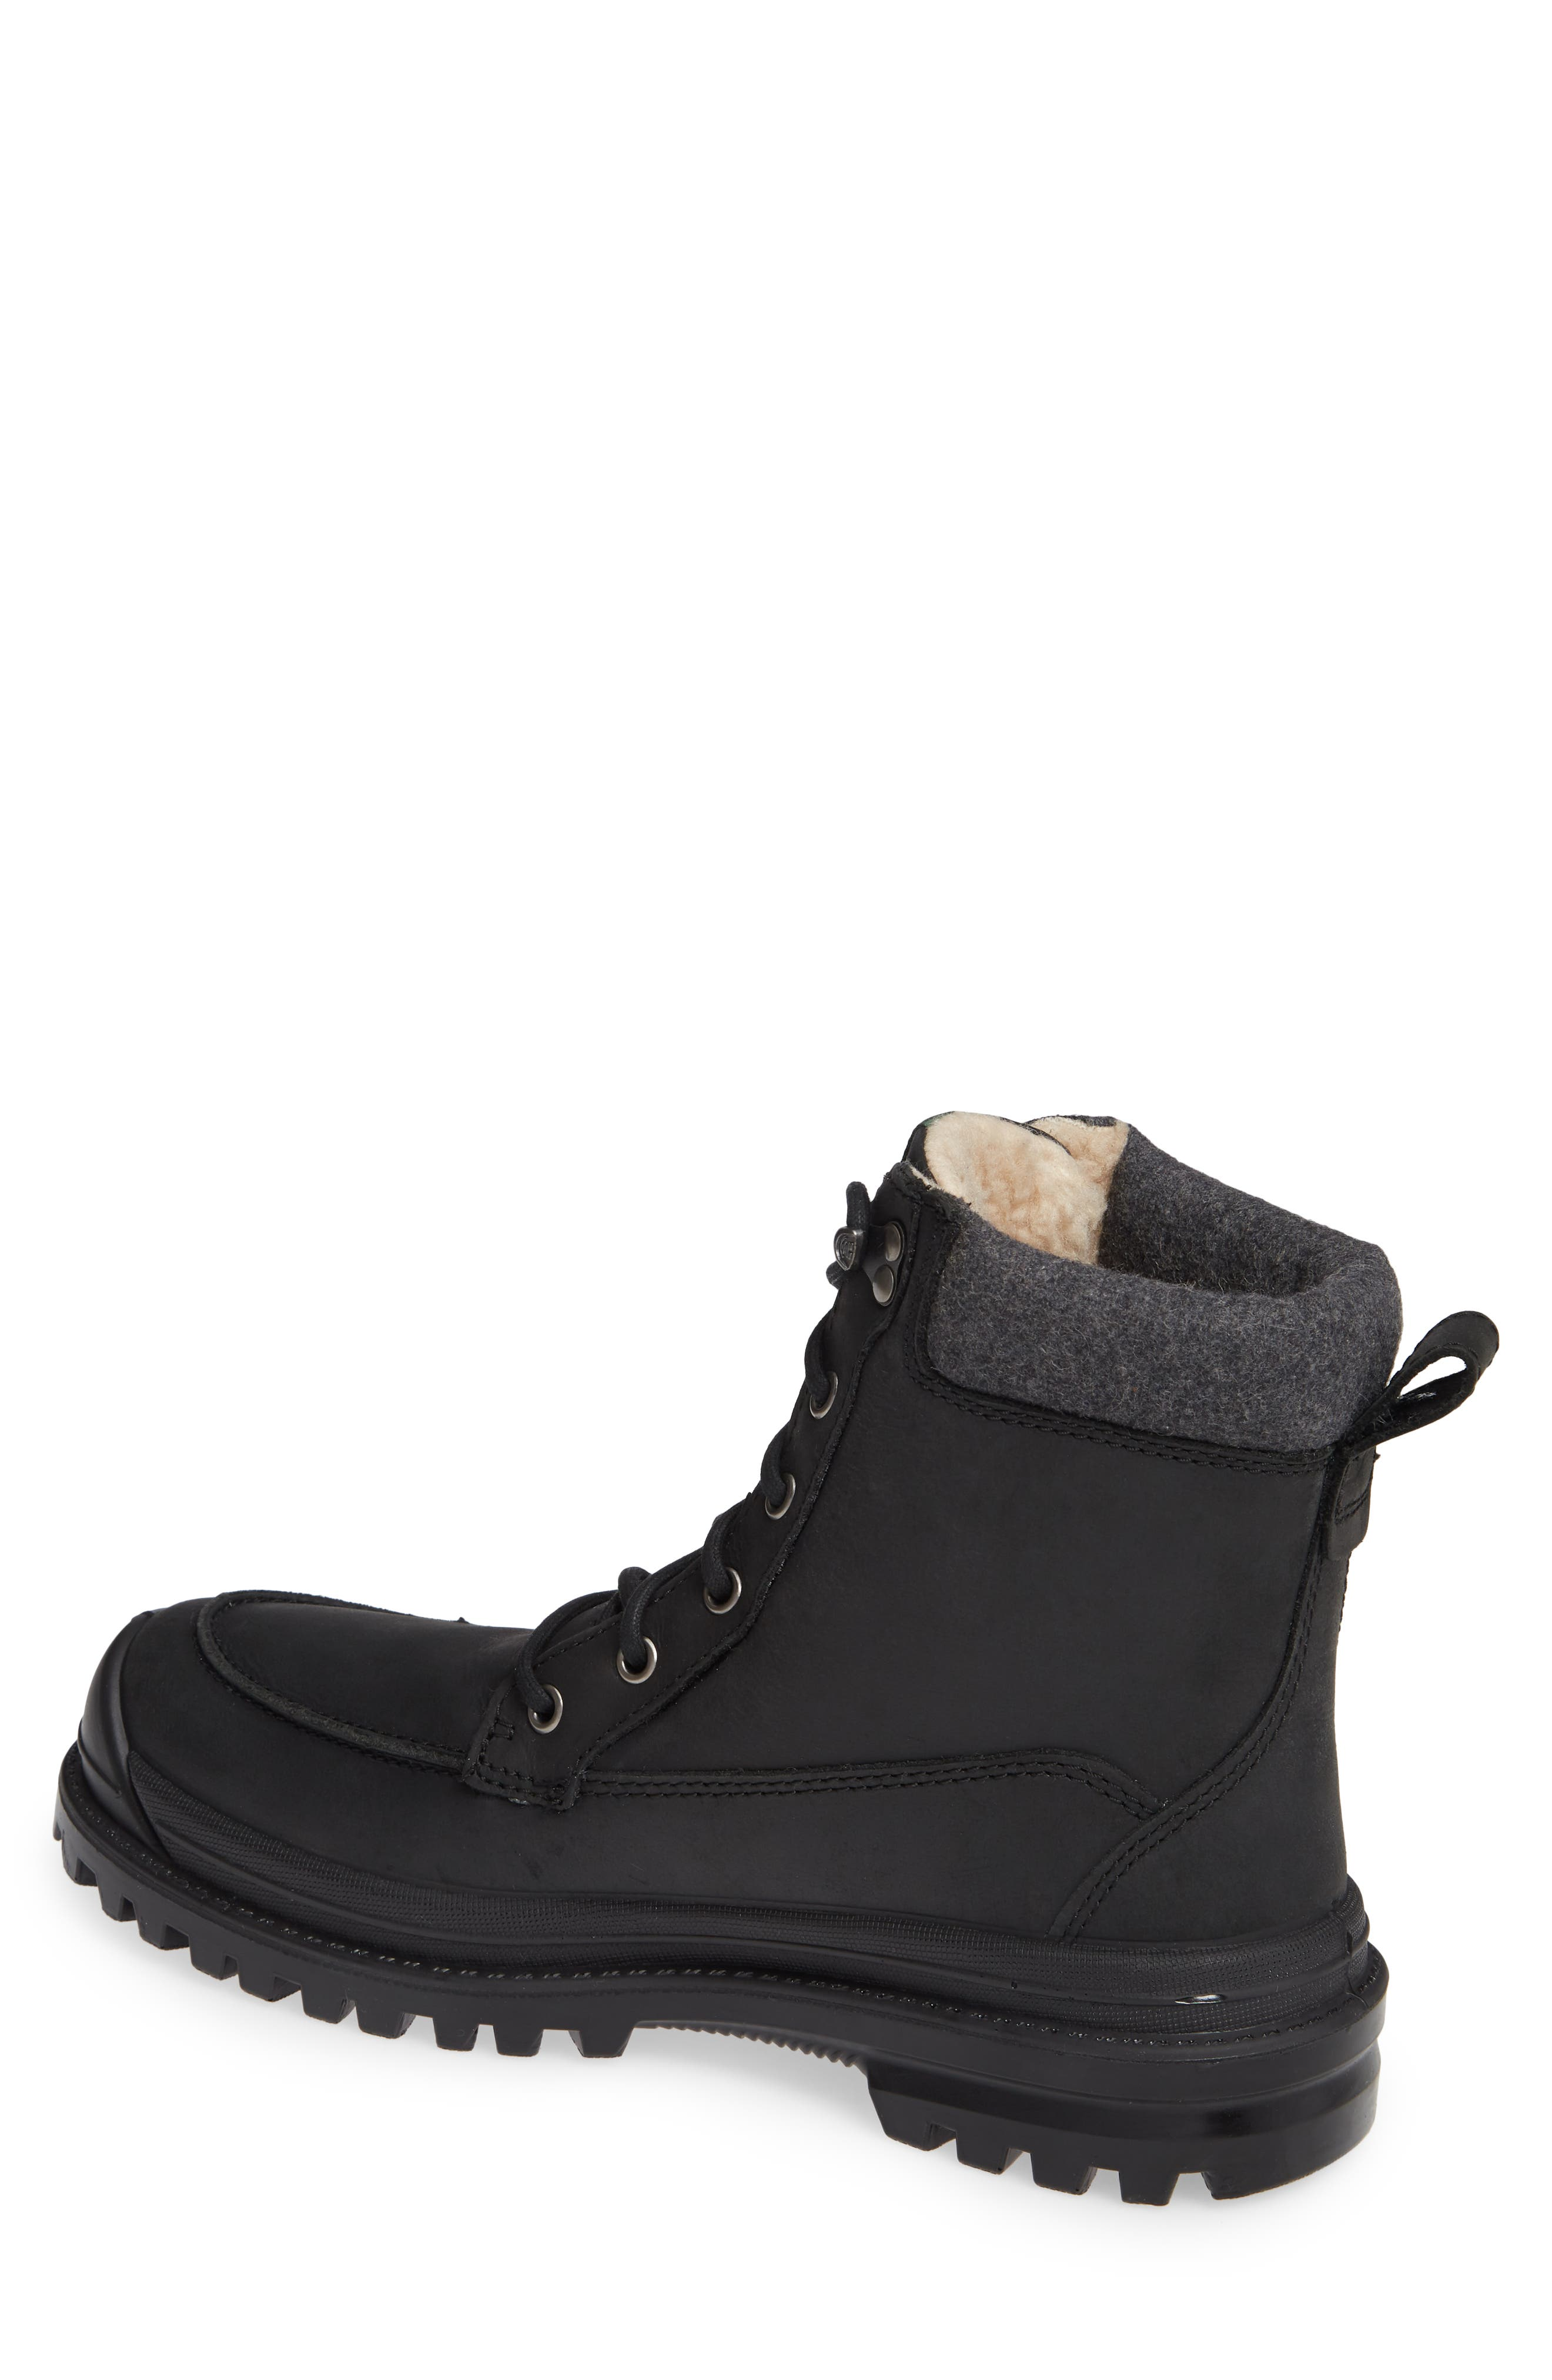 Griffon2 Snow Waterproof Boot with Faux Shearling,                             Alternate thumbnail 2, color,                             BLACK/ BLACK LEATHER